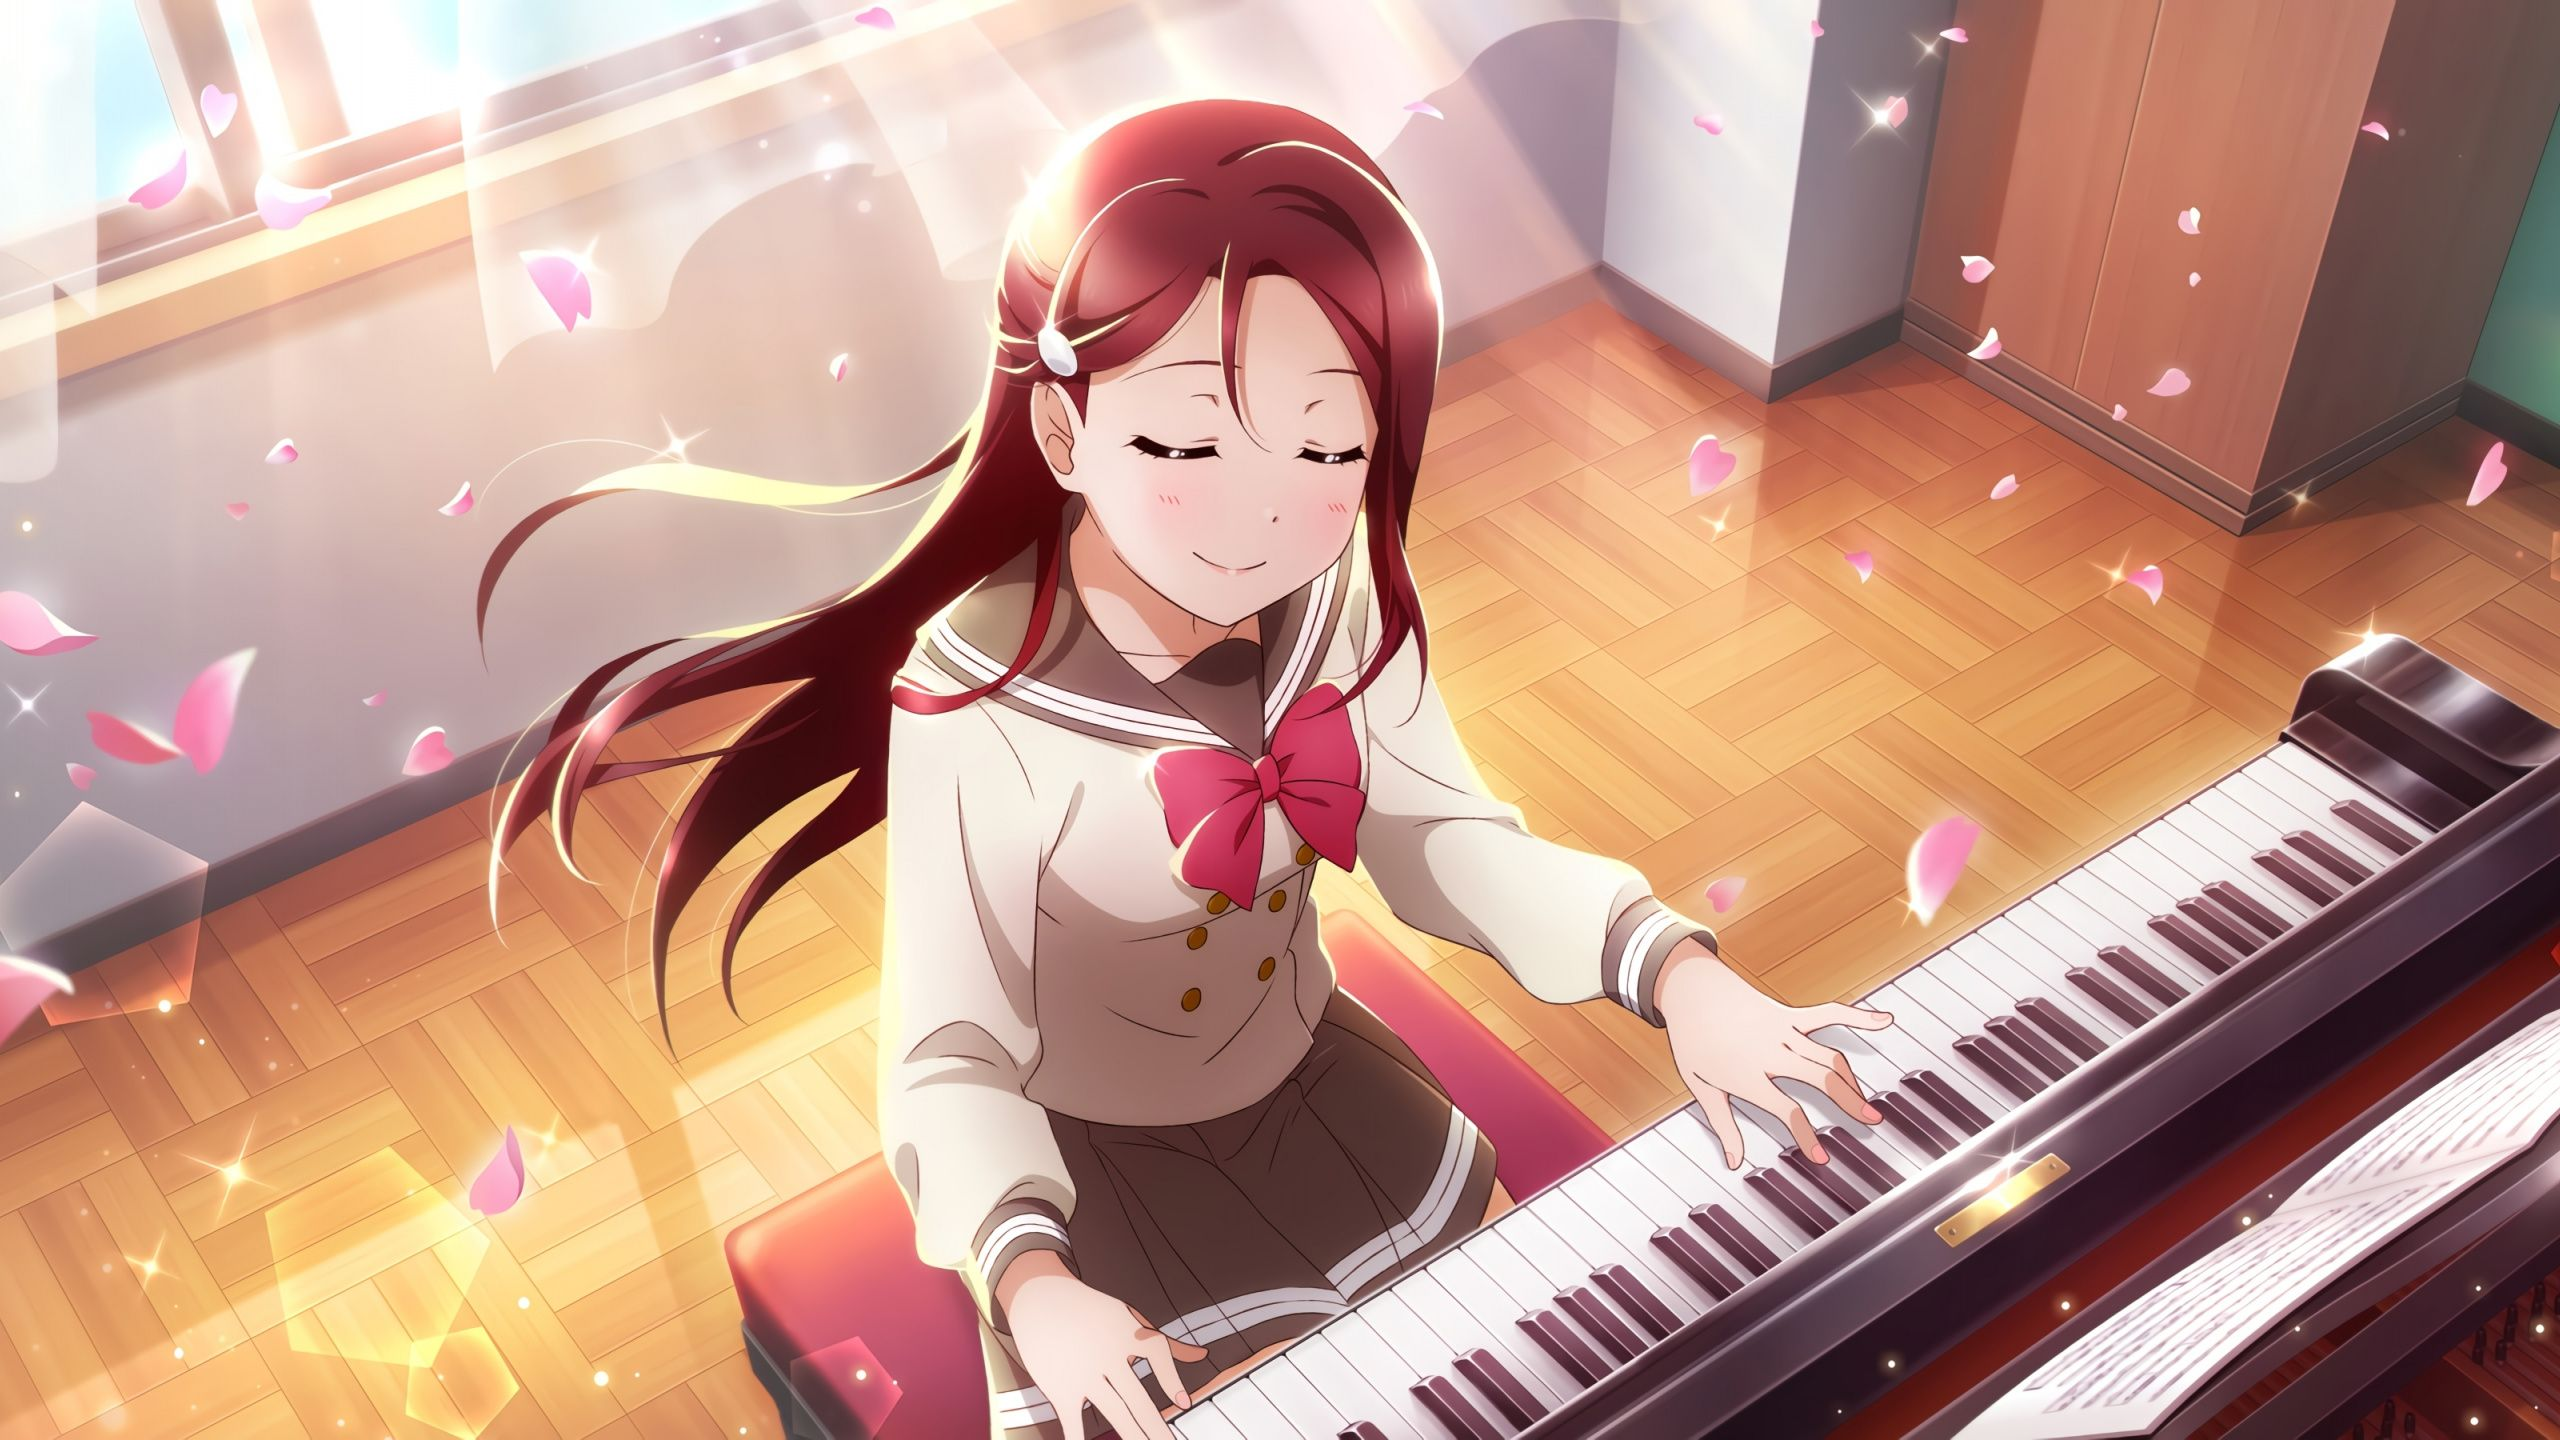 Anime Piano Wallpapers Top Free Anime Piano Backgrounds Wallpaperaccess